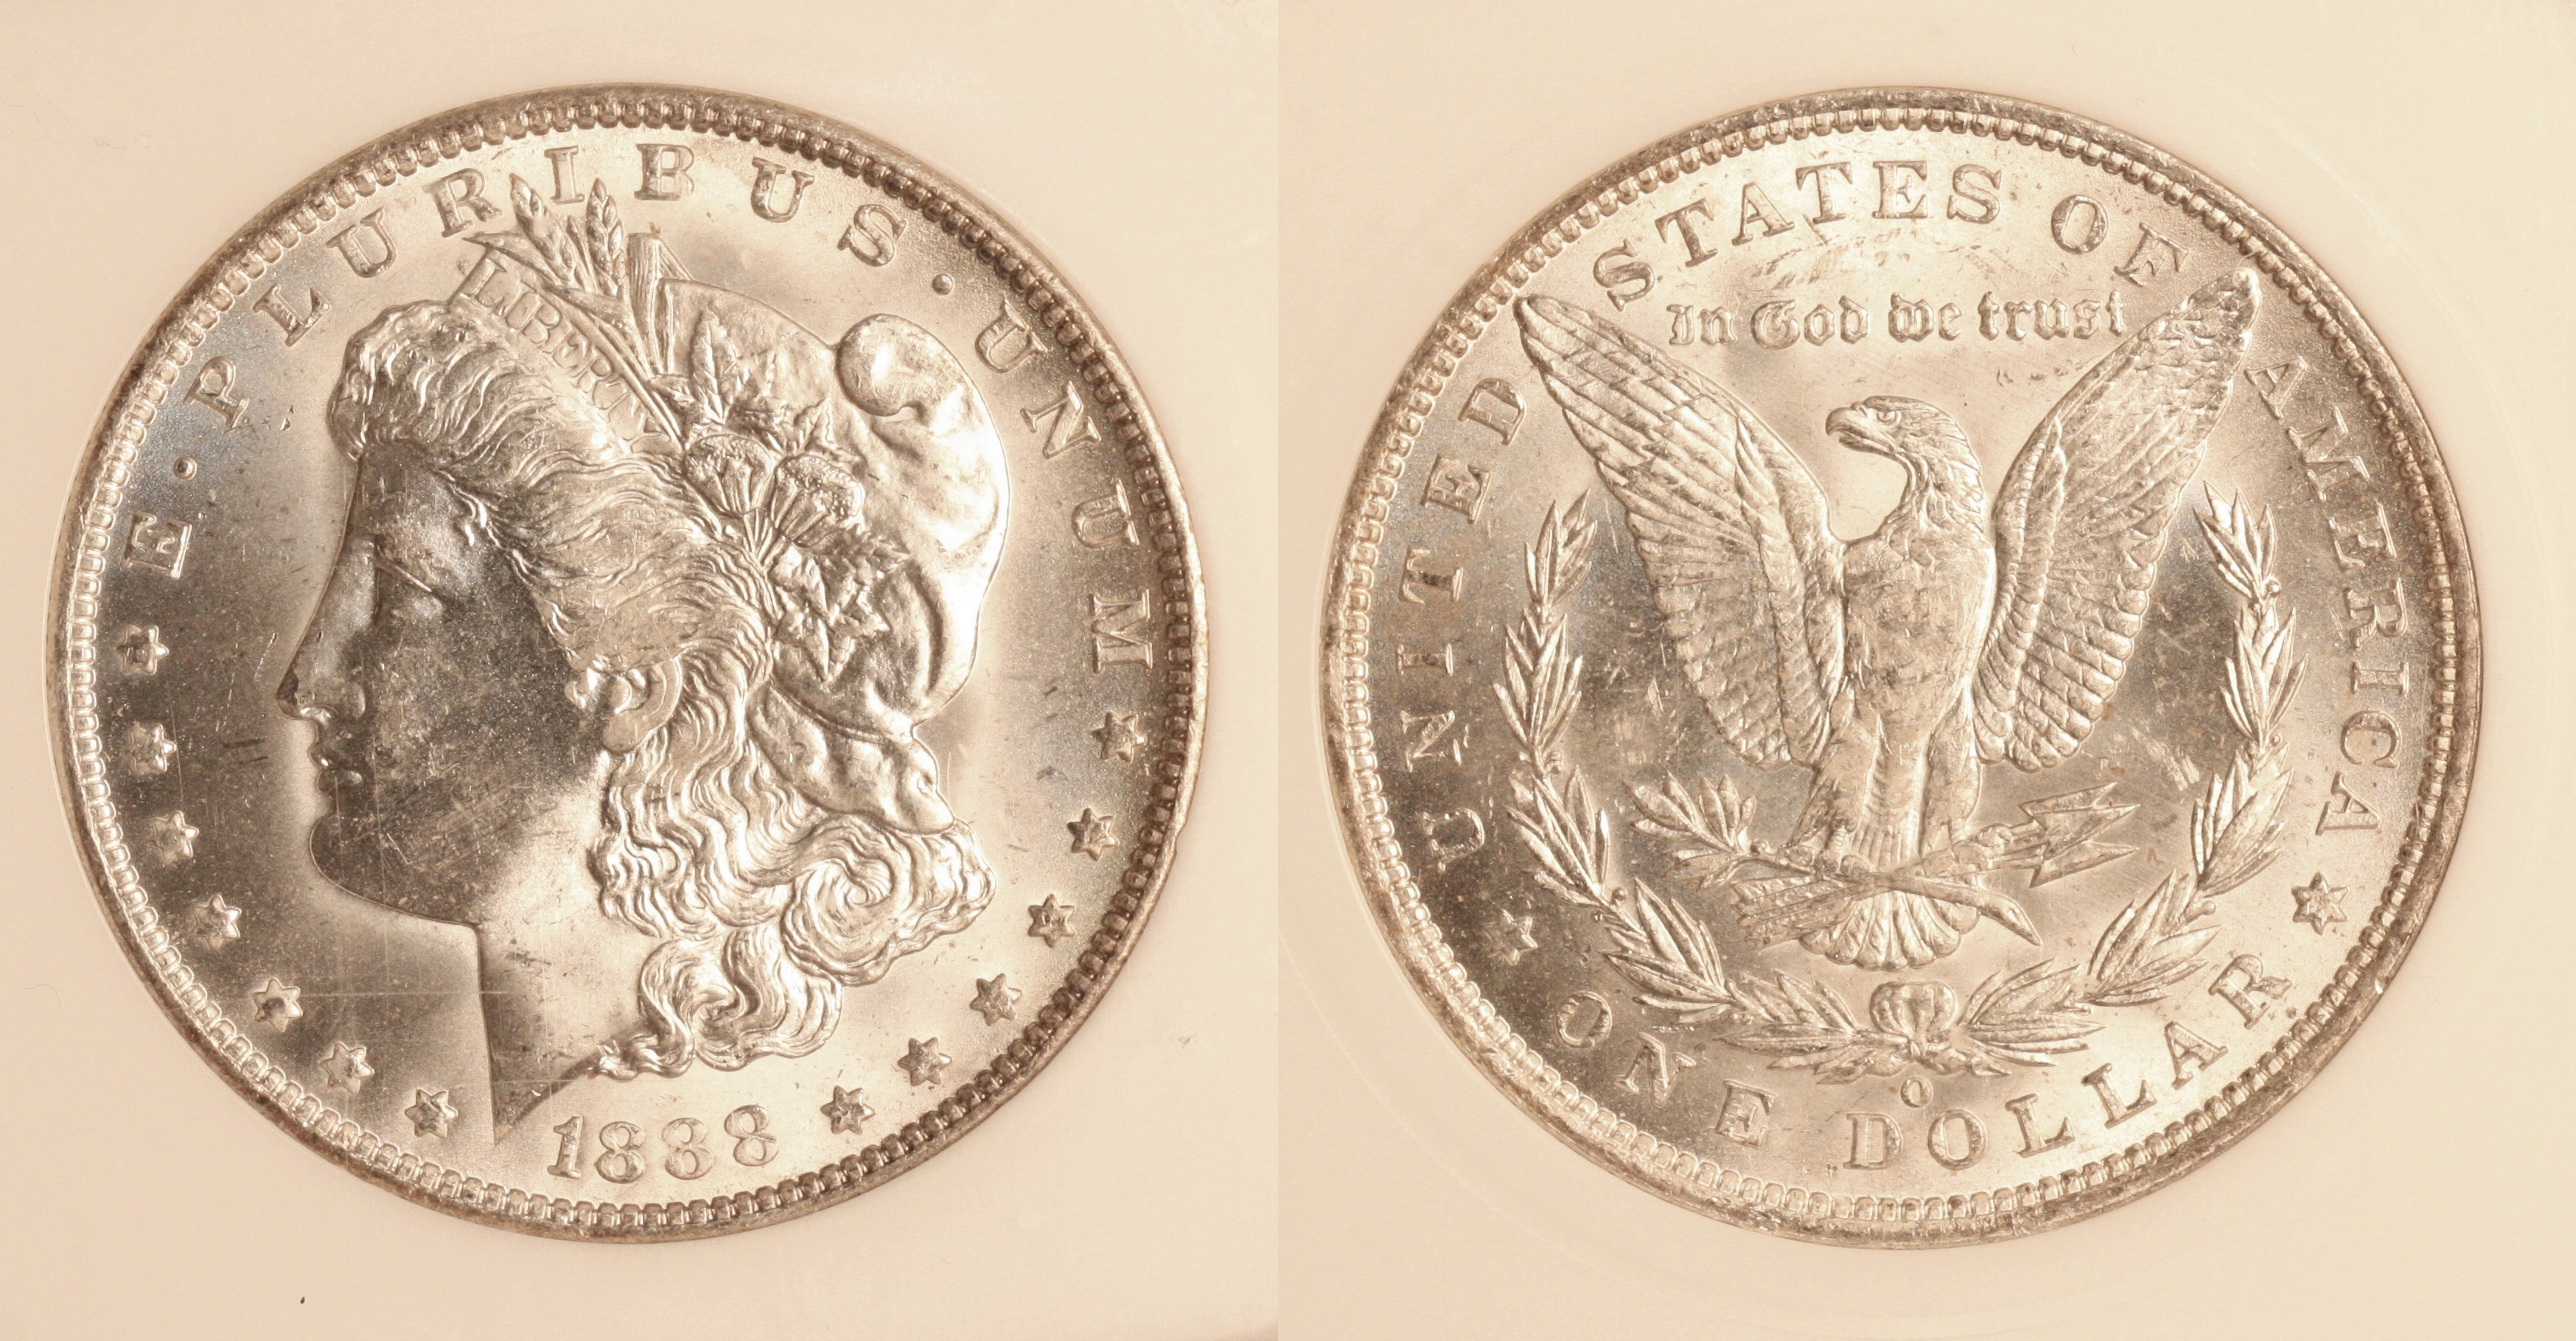 1888-O Morgan Silver Dollar PCI MS-65 camera